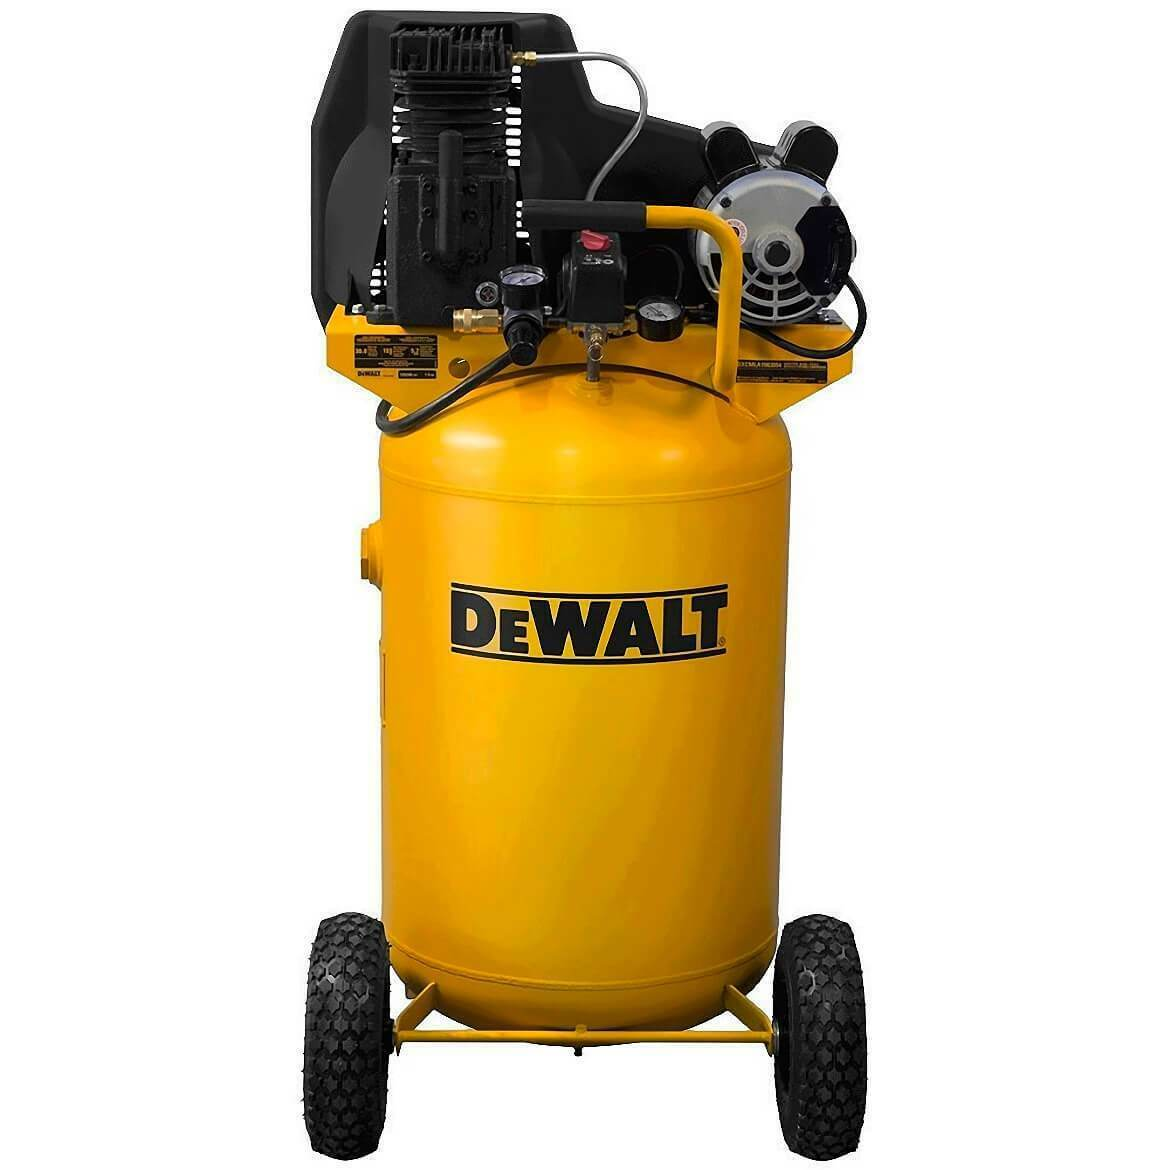 New Dewalt DXCMLA1983054 1.9-HP 30-Gallon (Belt-Drive) Dual Voltage Air Compressor.